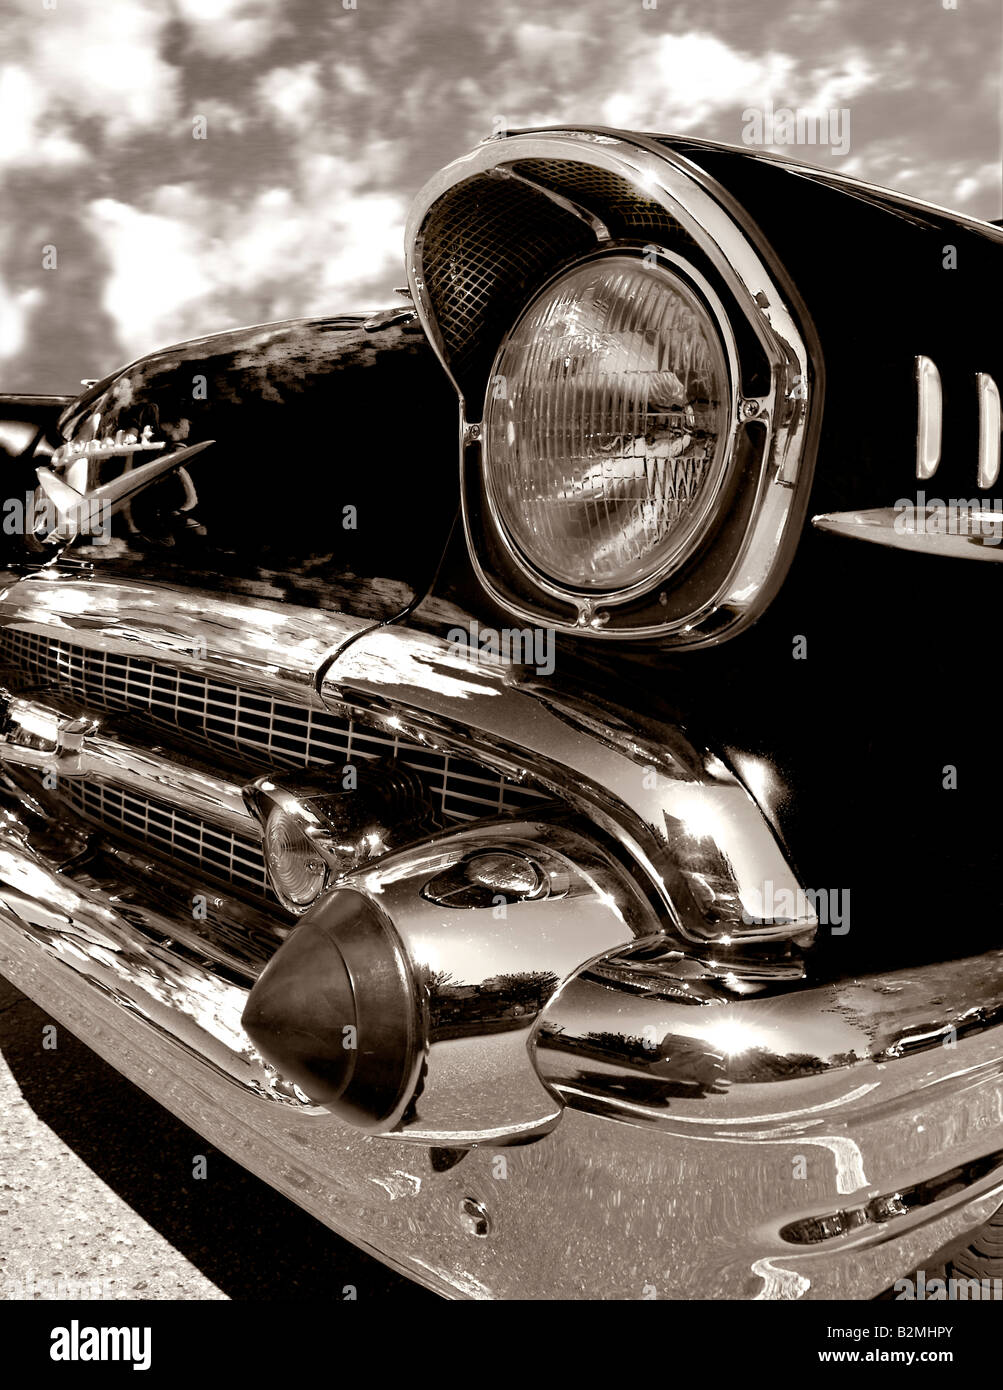 Dramatic detail of a 1957 Chevrolet Bel air, in black and white. - Stock Image